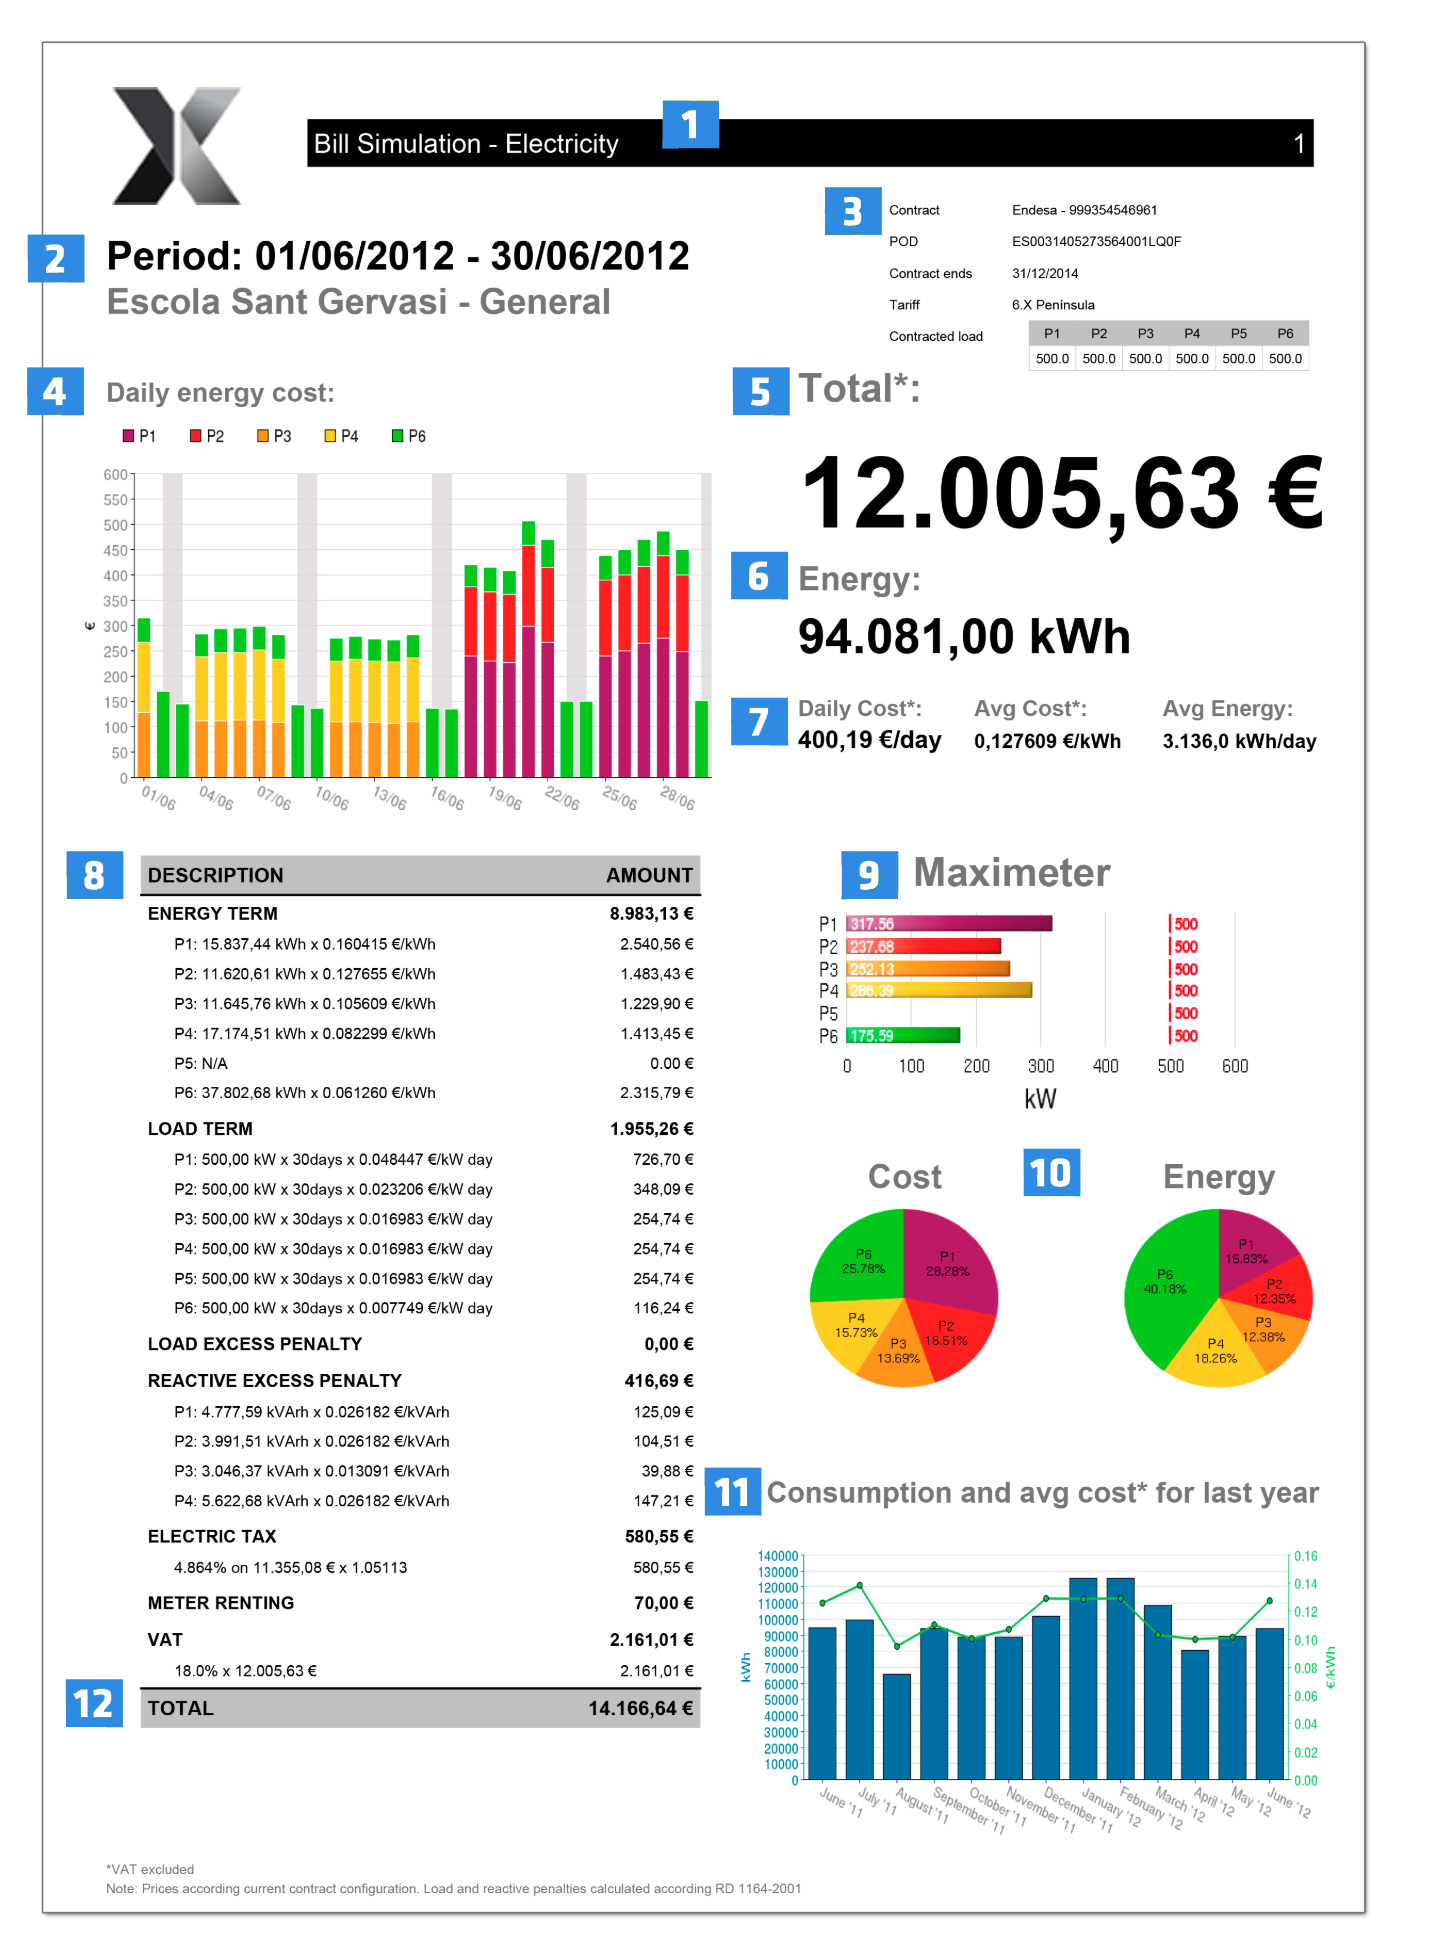 dexma-electricity-bill-simulation-report-1.png